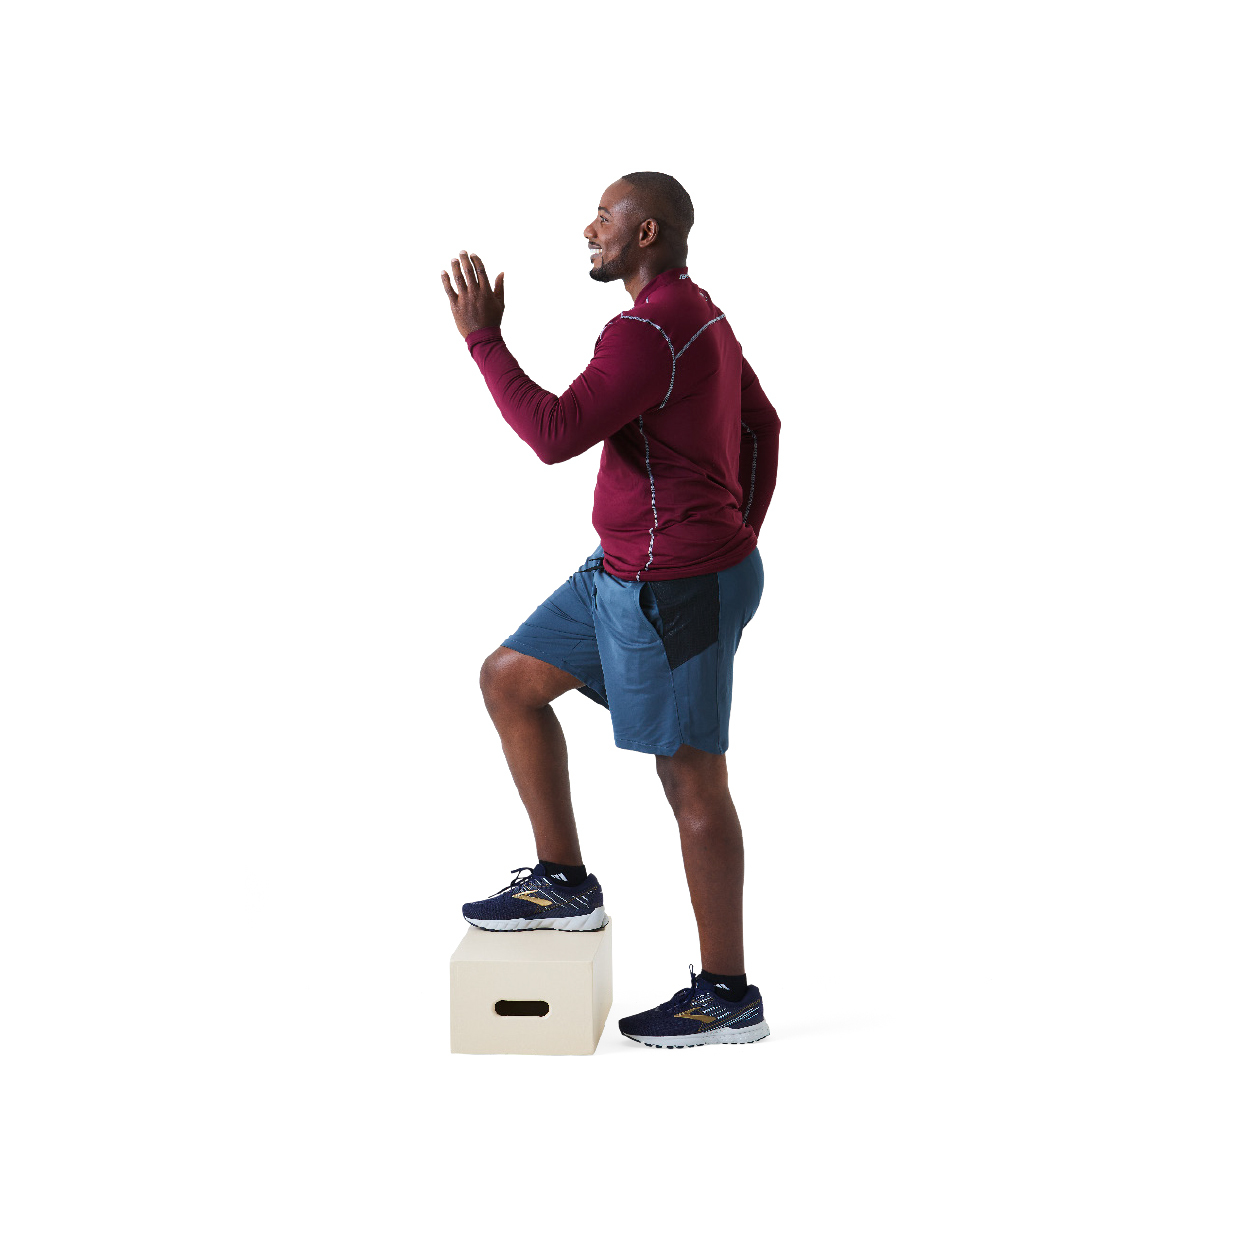 Man doing stair stepping